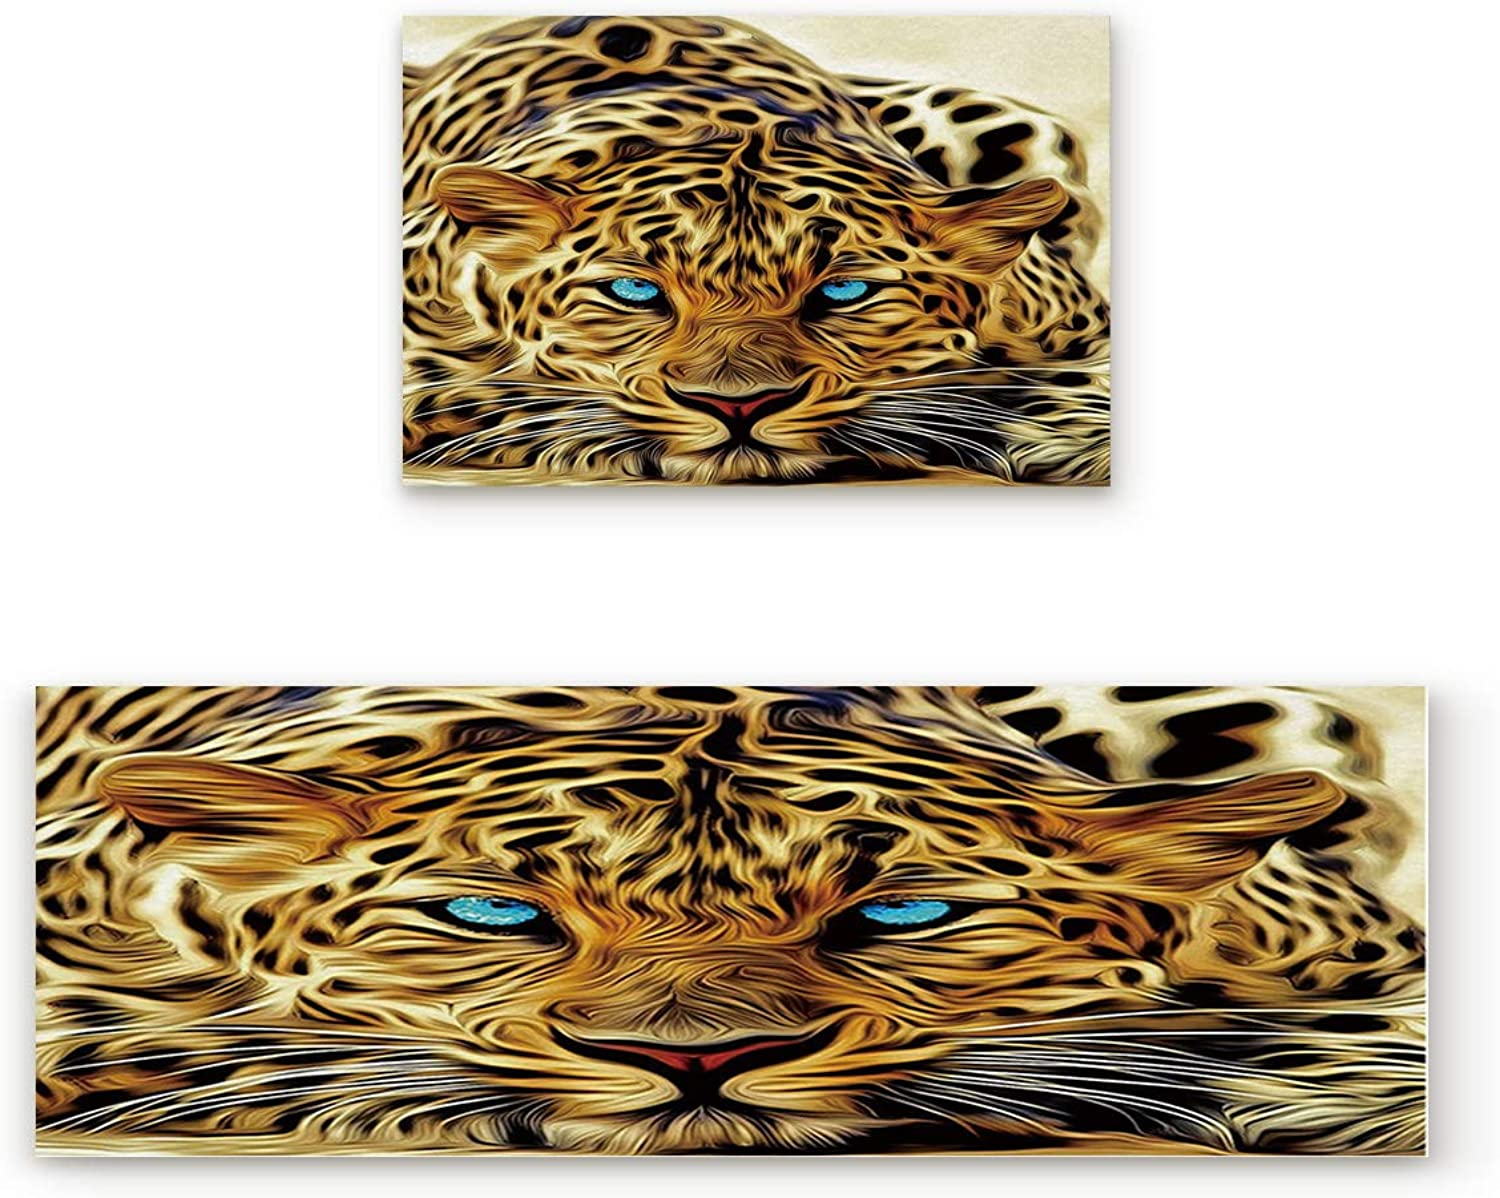 KAROLA 2 Piece Non-Slip Kitchen Mat Doormat Runner Rug Set Thin Low Pile Indoor Area Rugs Leopard with bluee Eyes Wild Animal Print 19.7 x31.5 +19.7 x47.2